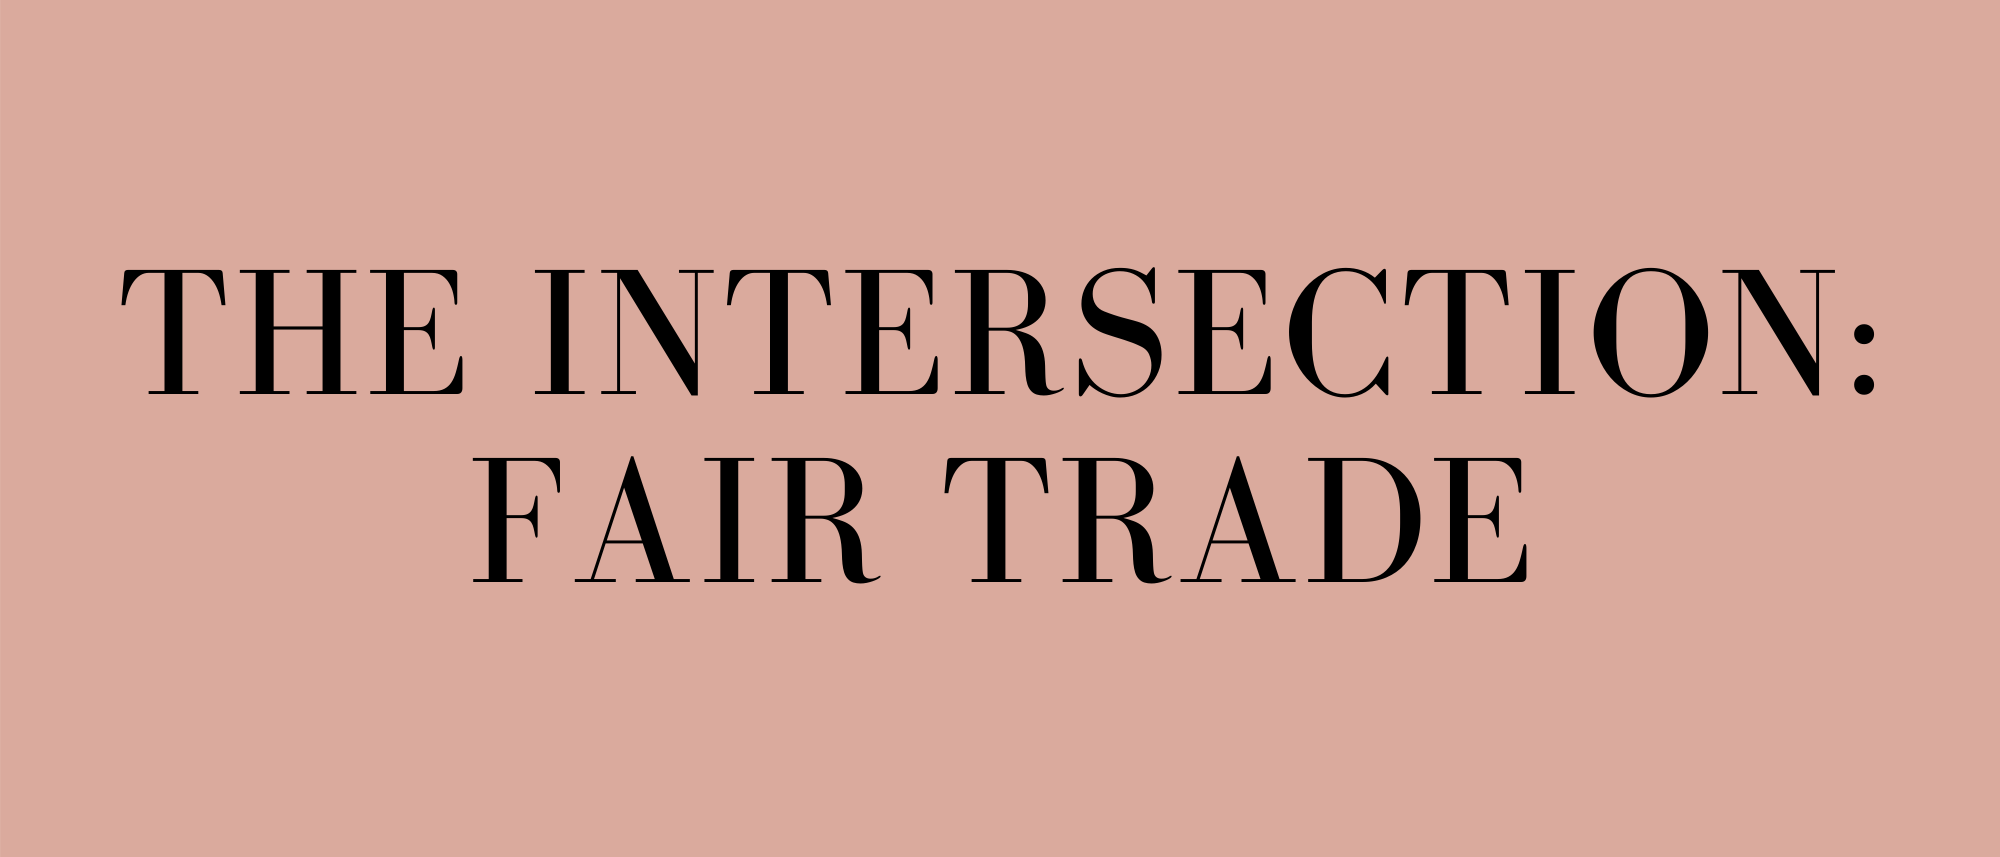 The Intersection Fair Trade